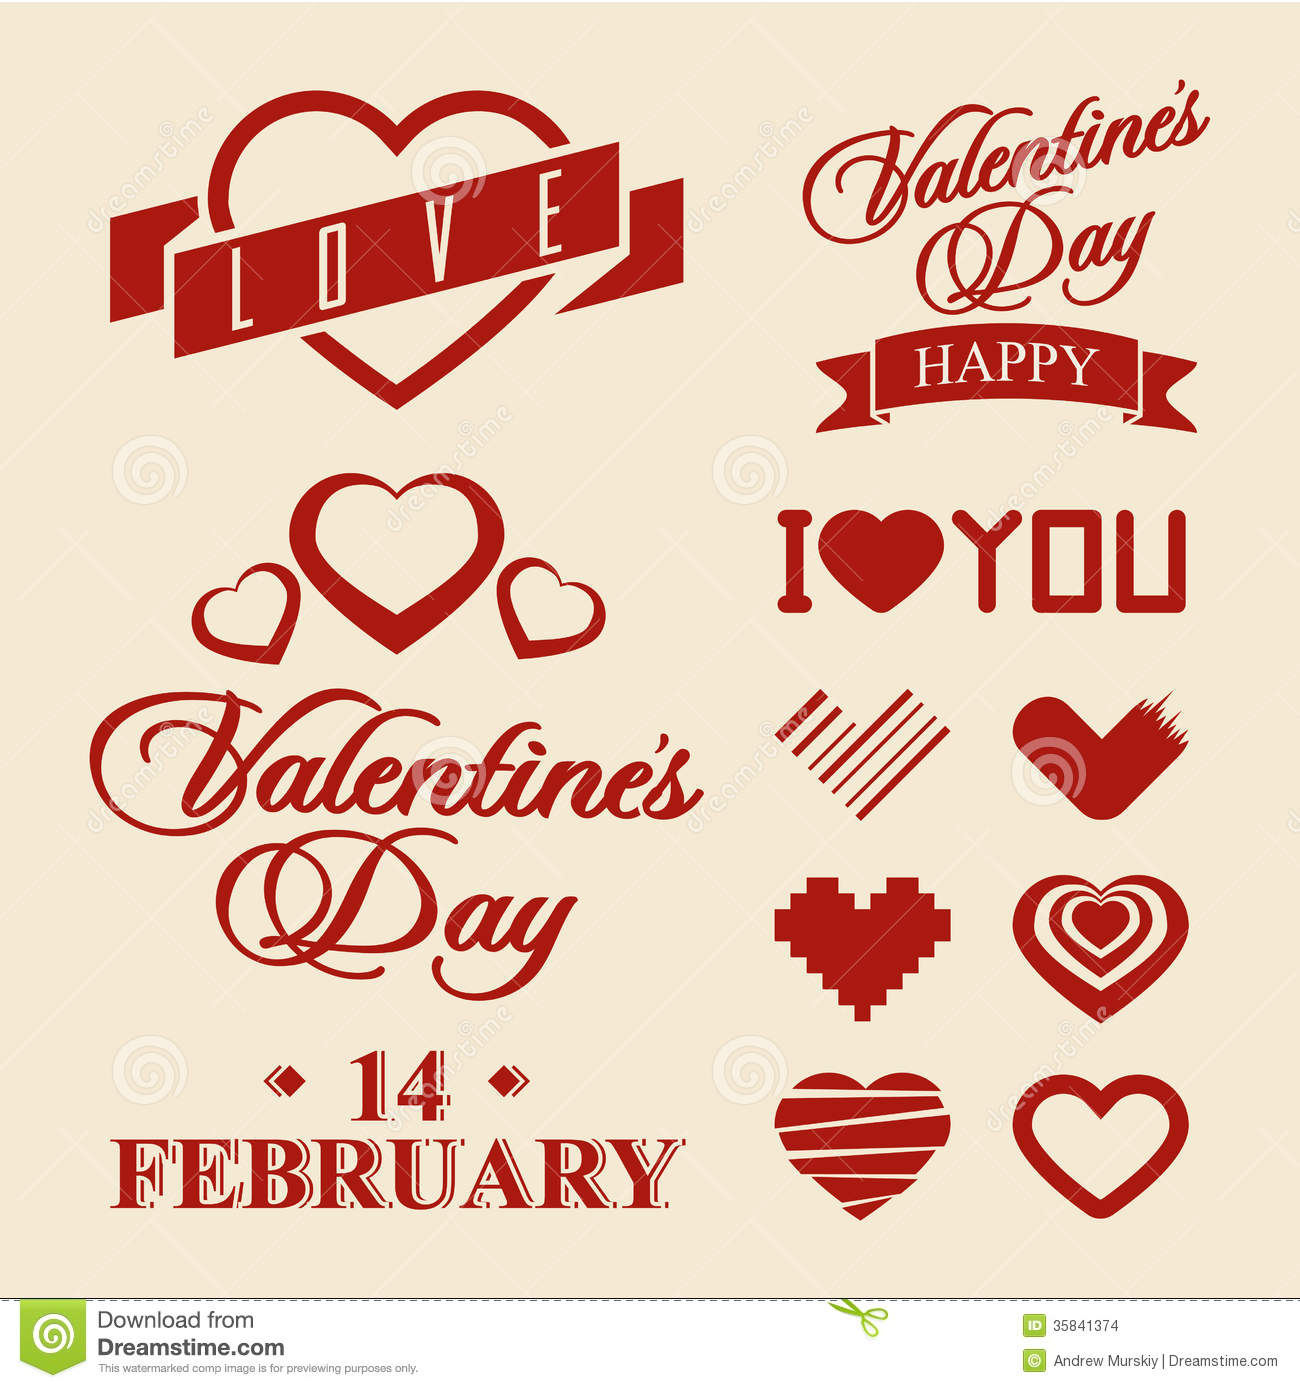 Valentines Day Symbols And Design Elements Stock Images